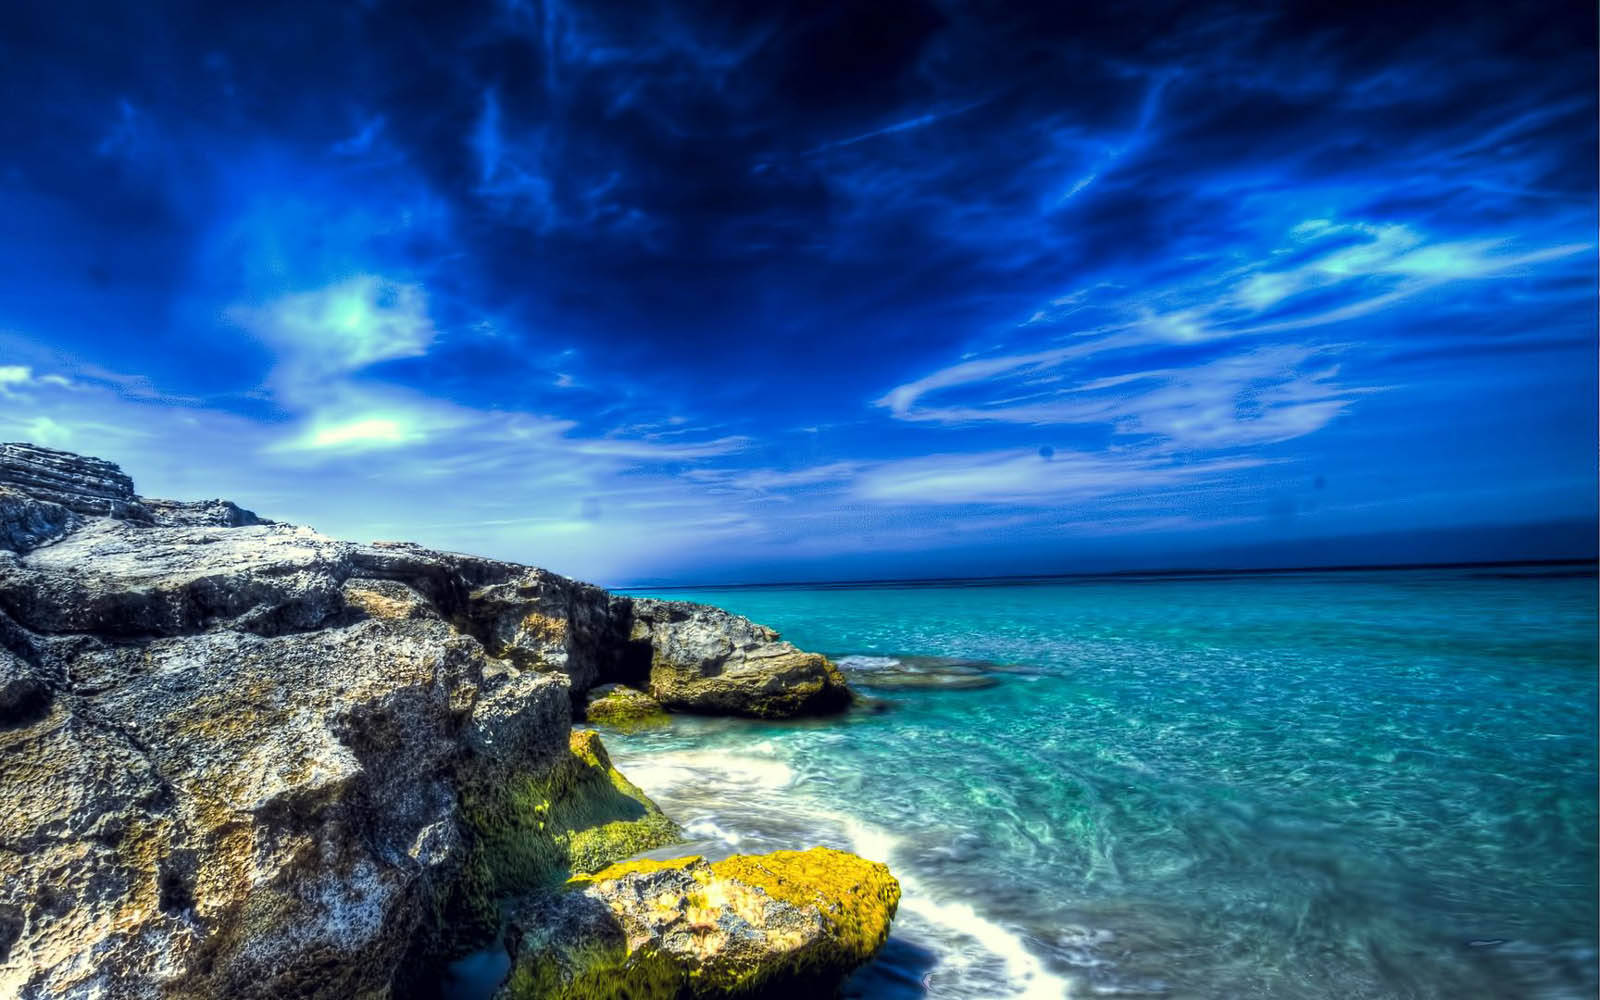 wallpaper Rocky Beach Desktop Wallpapers 1600x1000